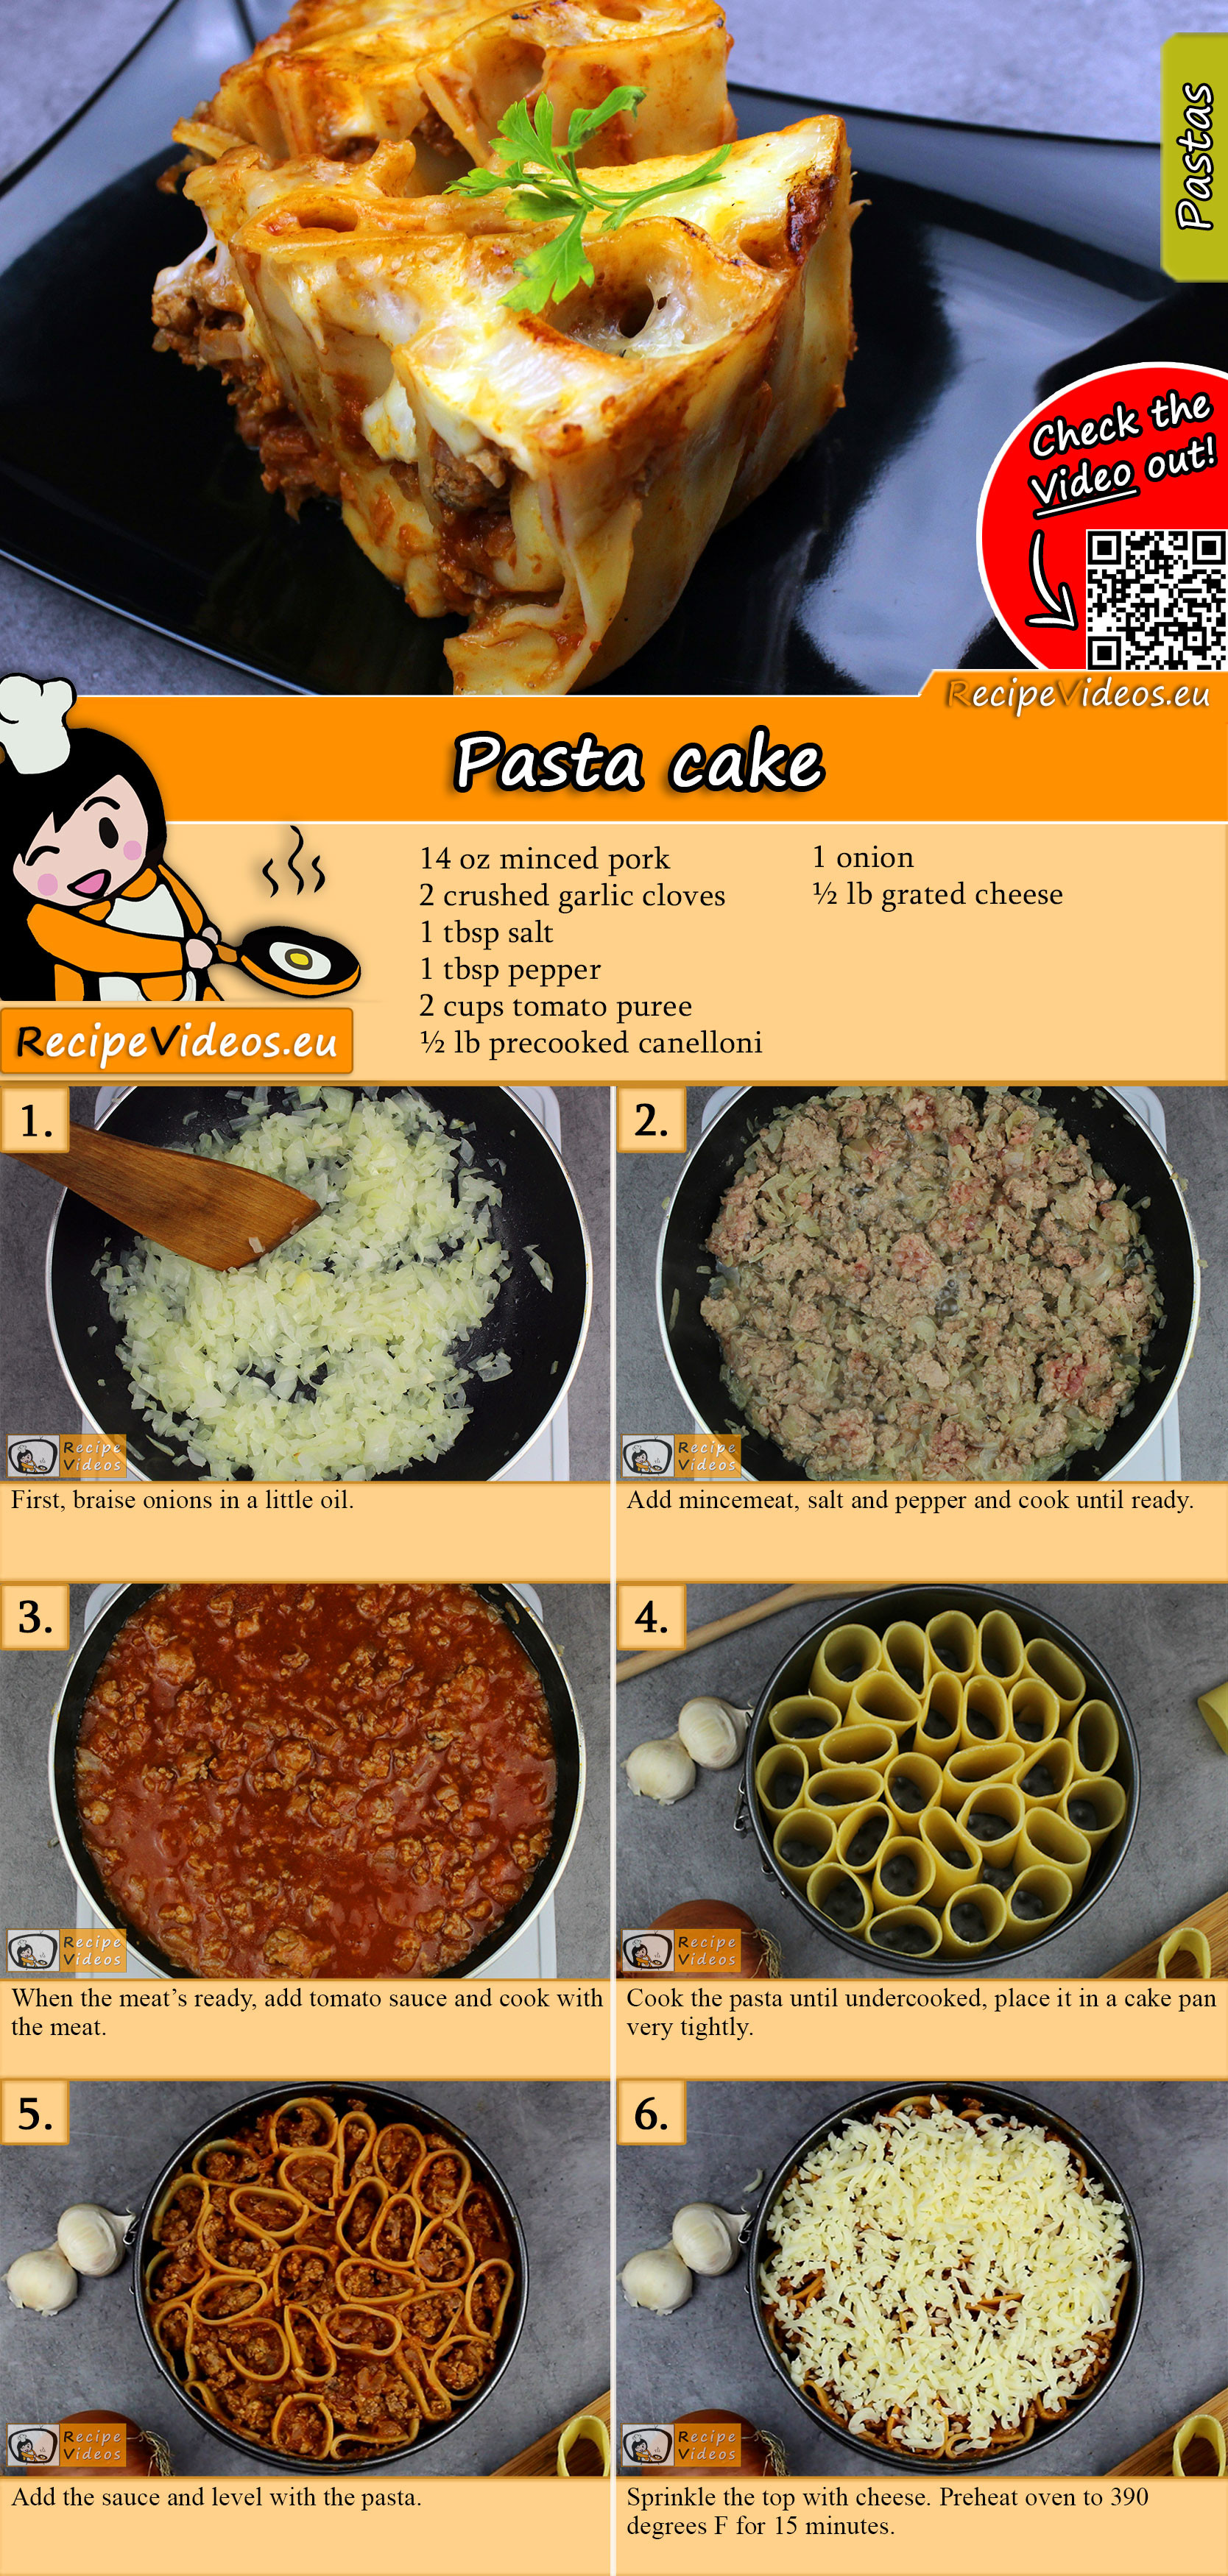 Pasta cake recipe with video